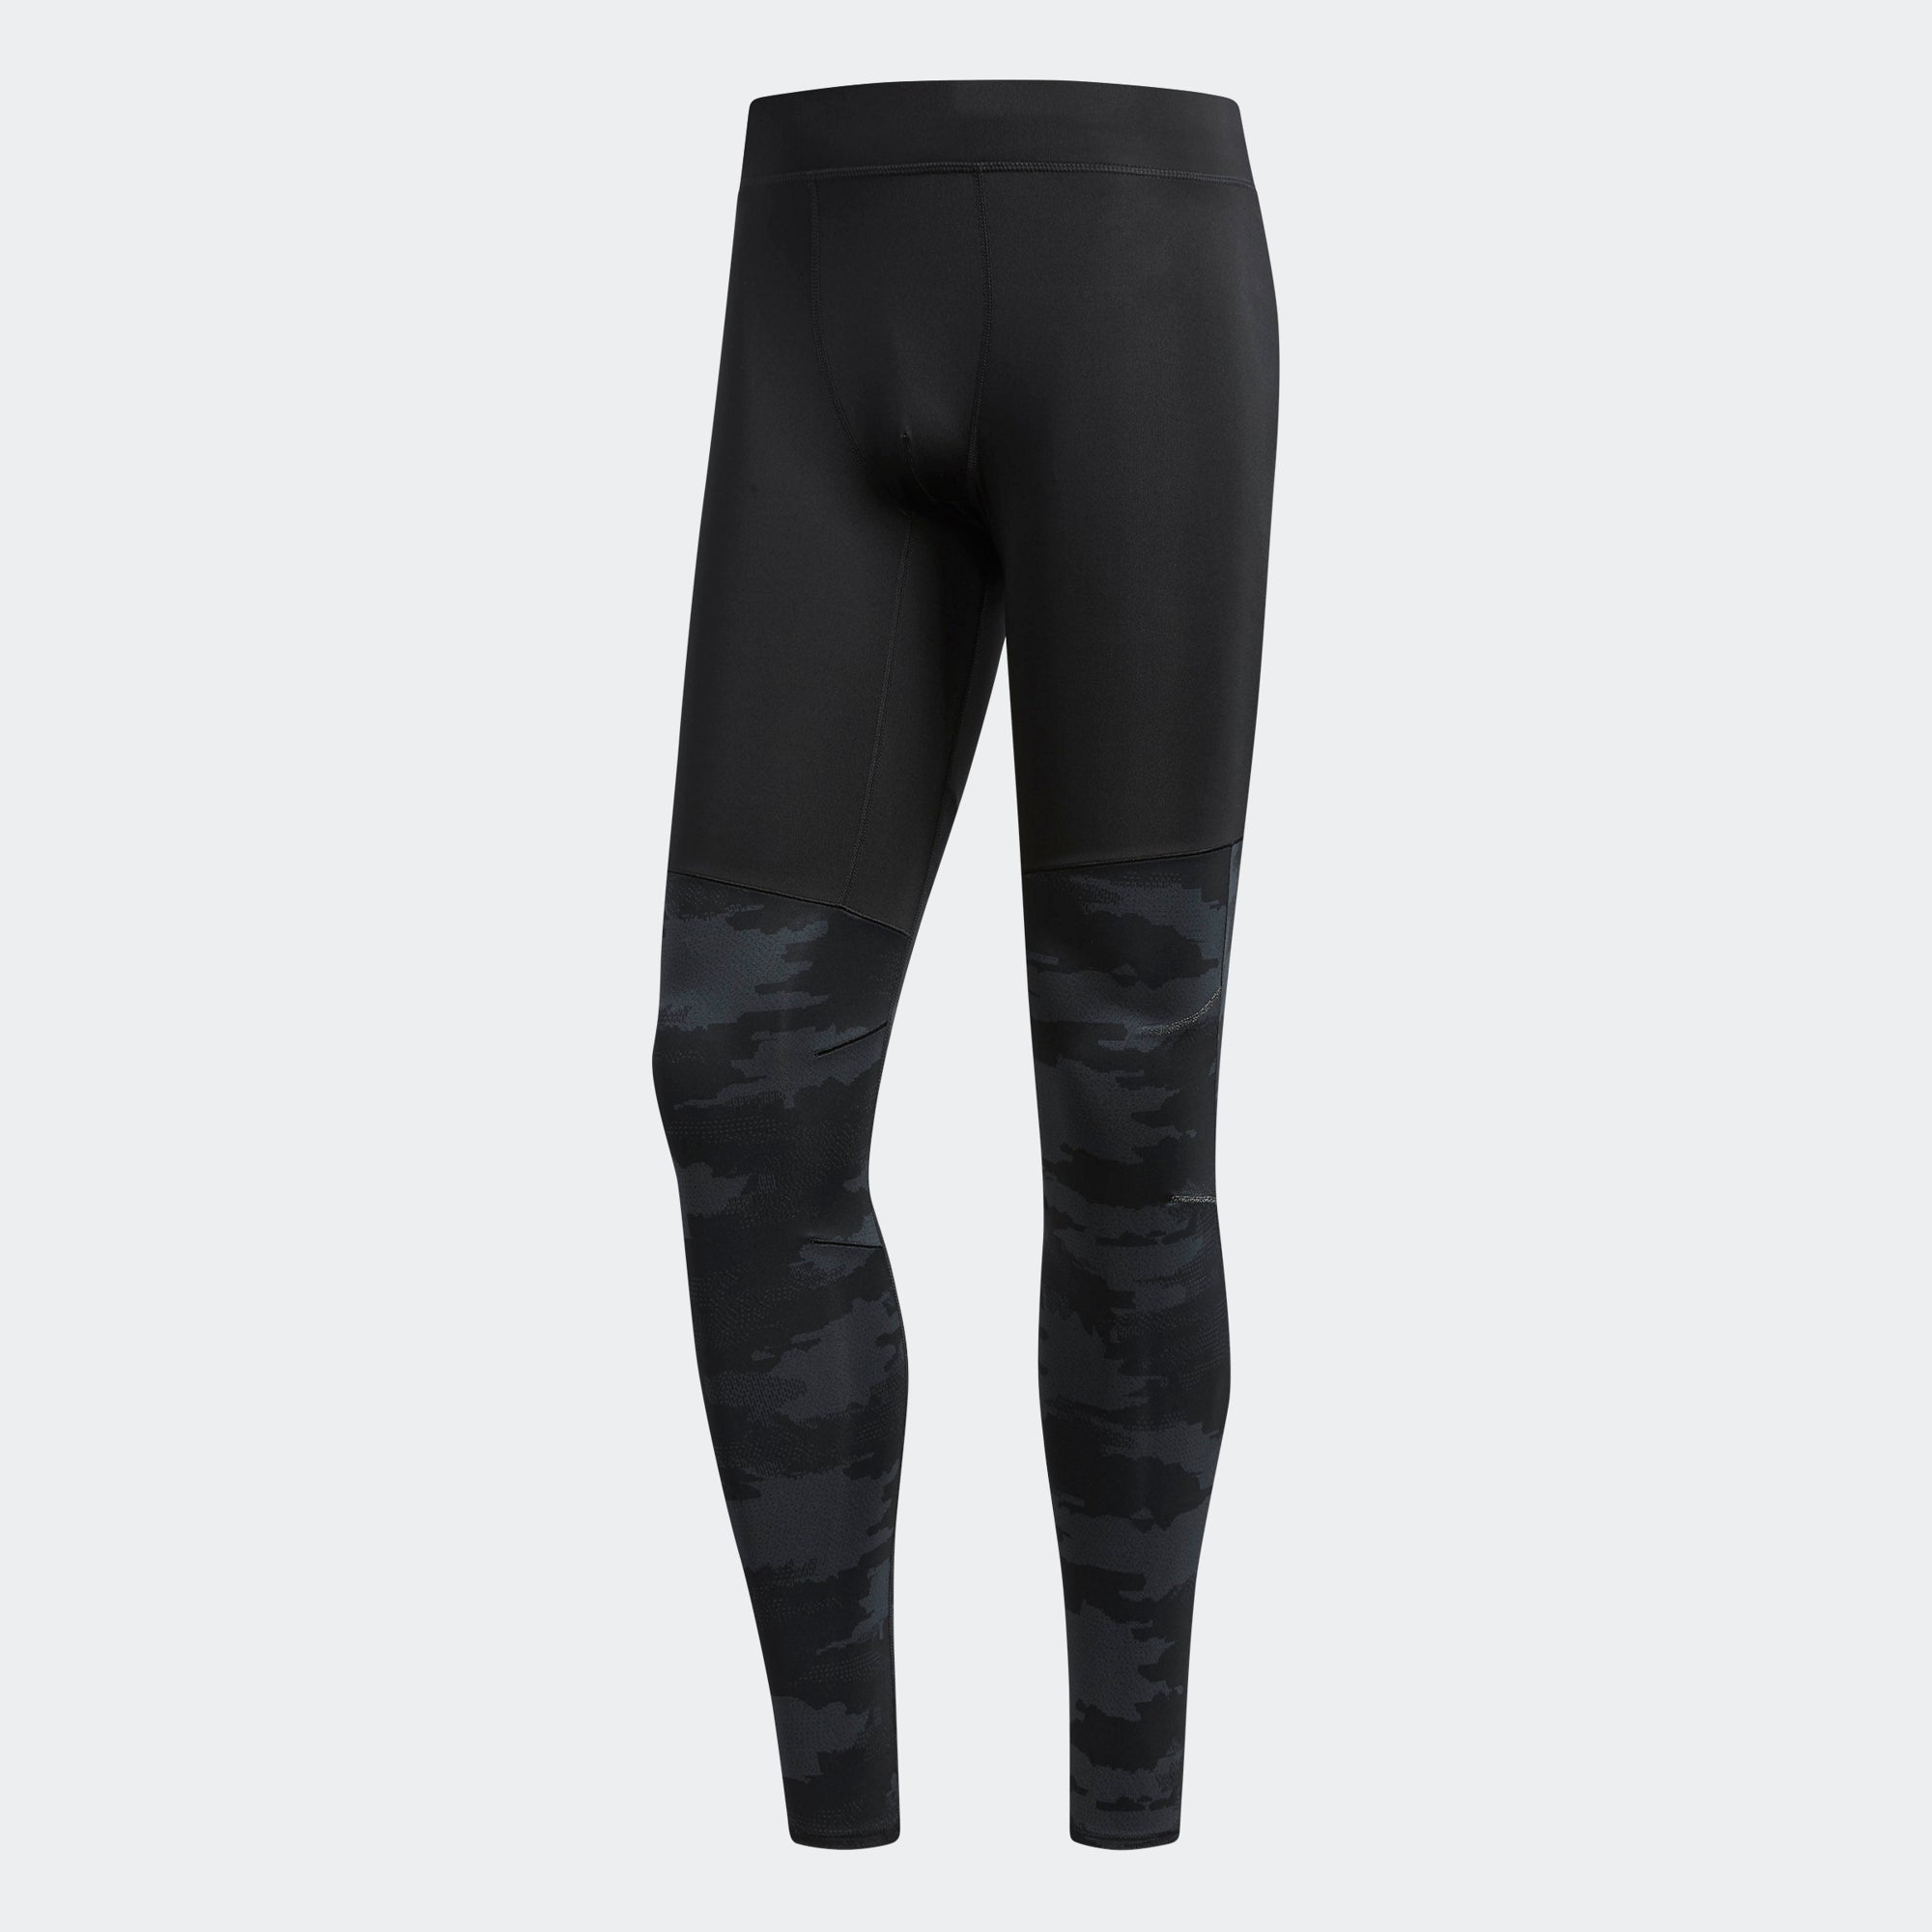 27fa5ba01 Buy adidas Men Supernova TKO Graphic Tight